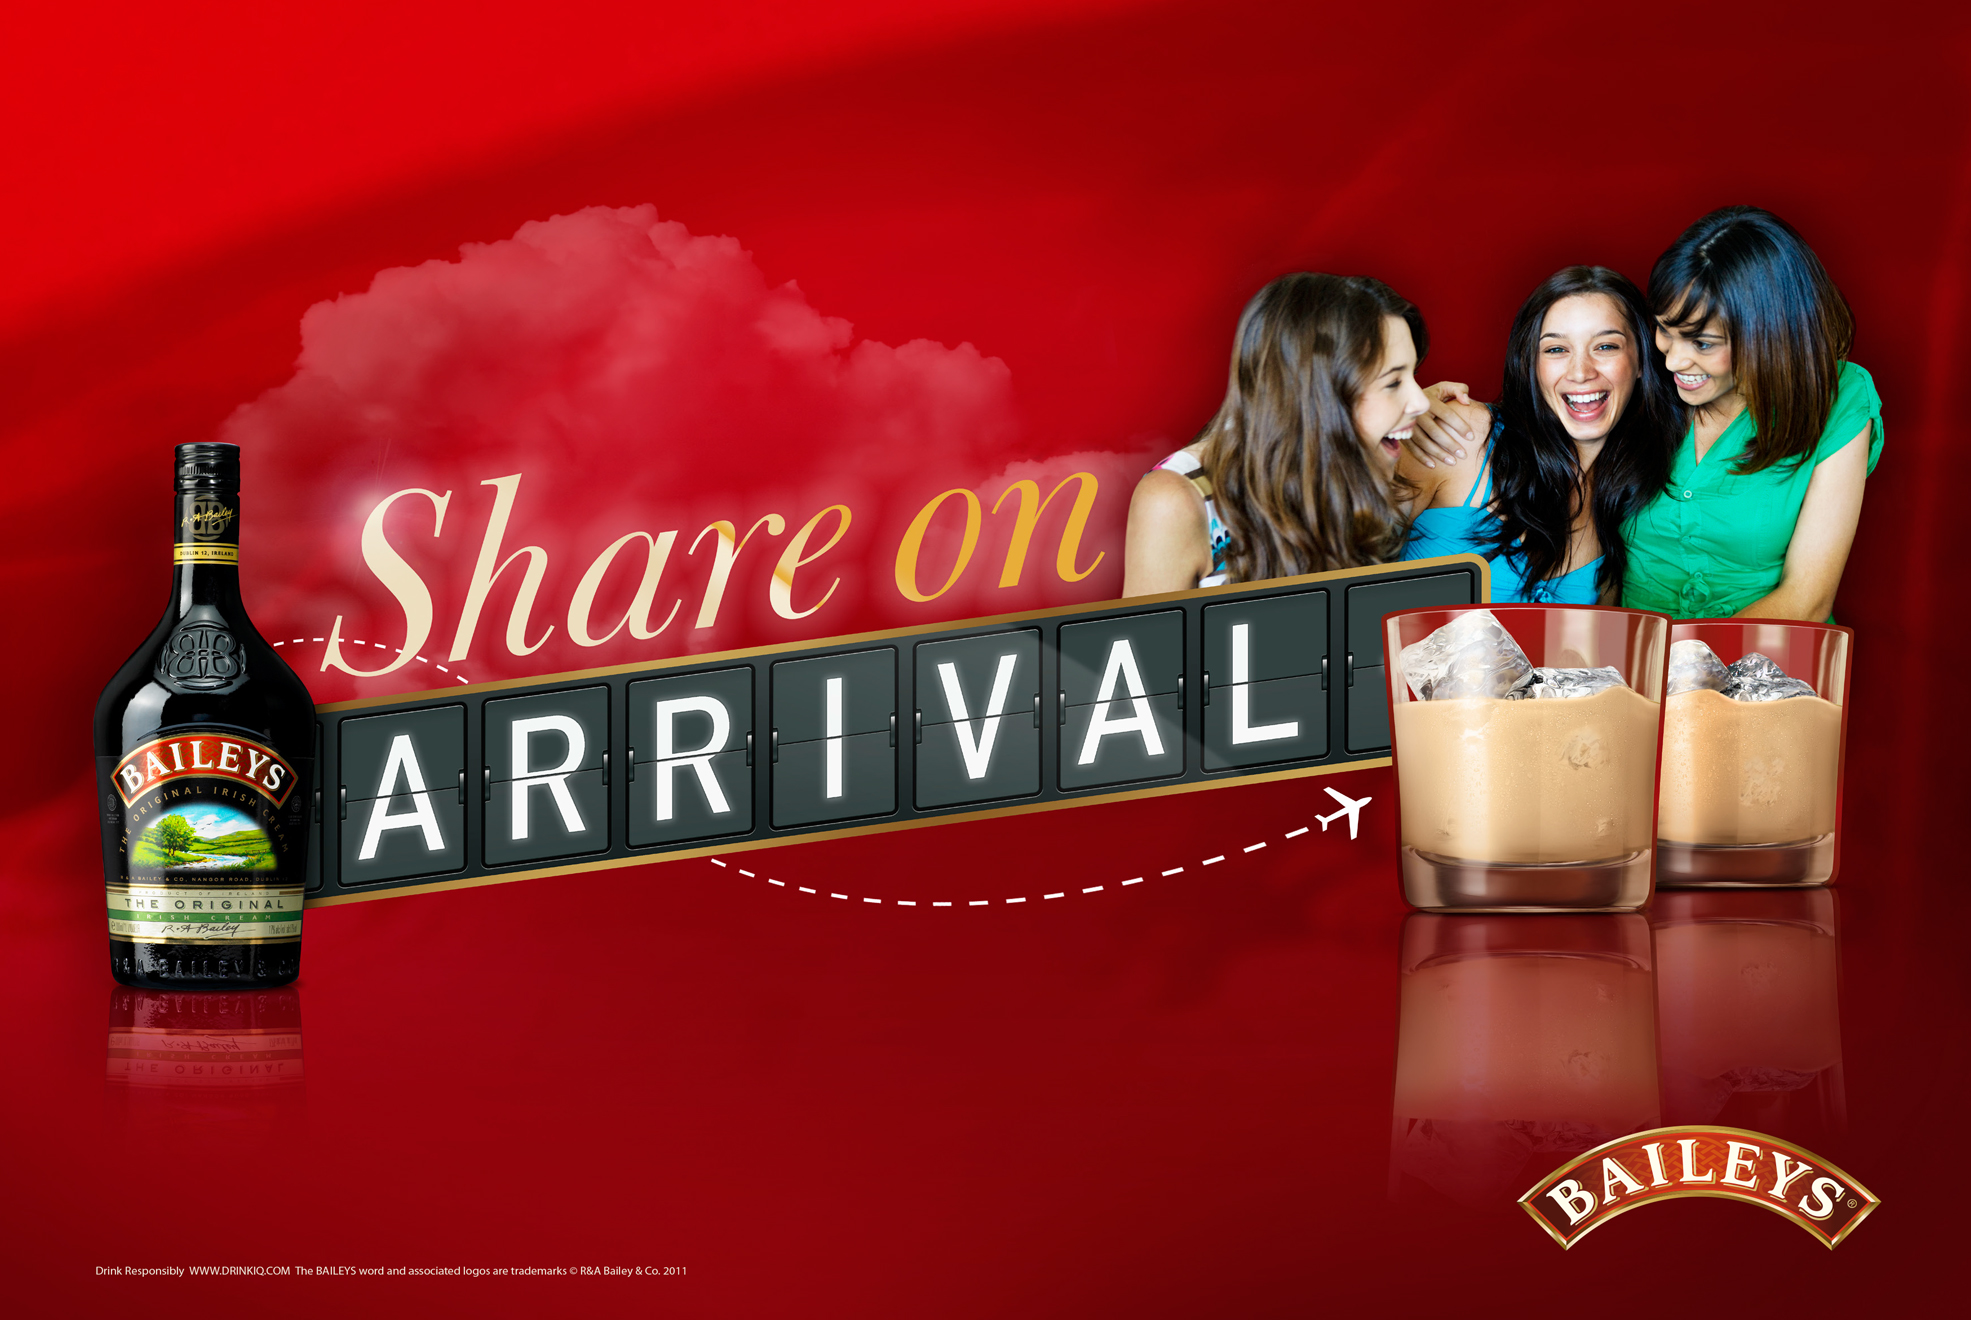 Baileys – Originals, Share on arrival toolkit